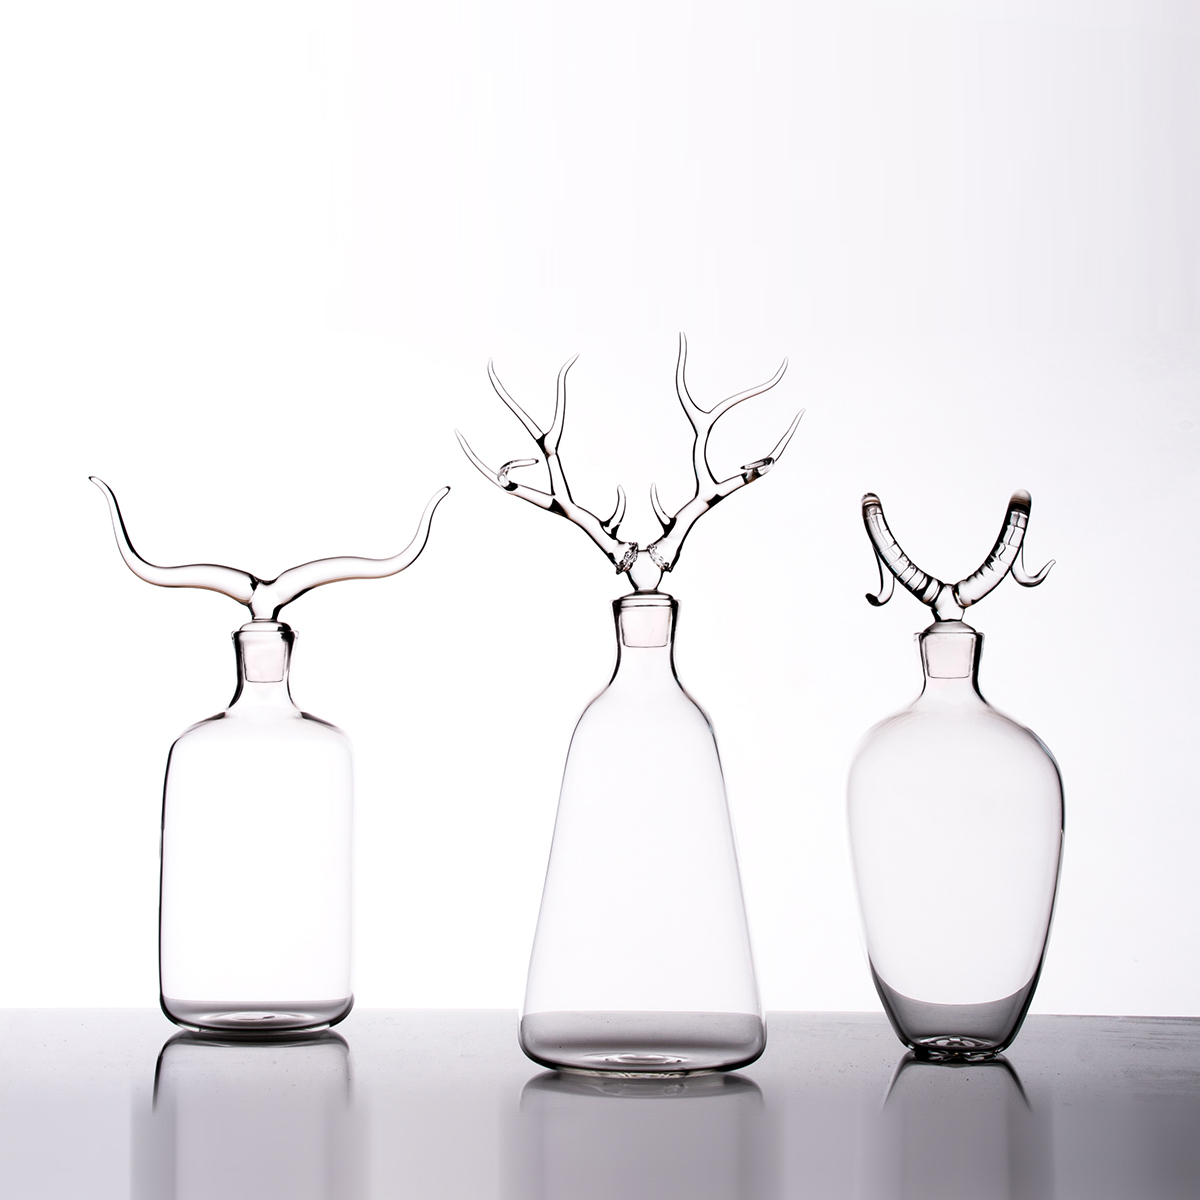 Hand-blown glass bottles